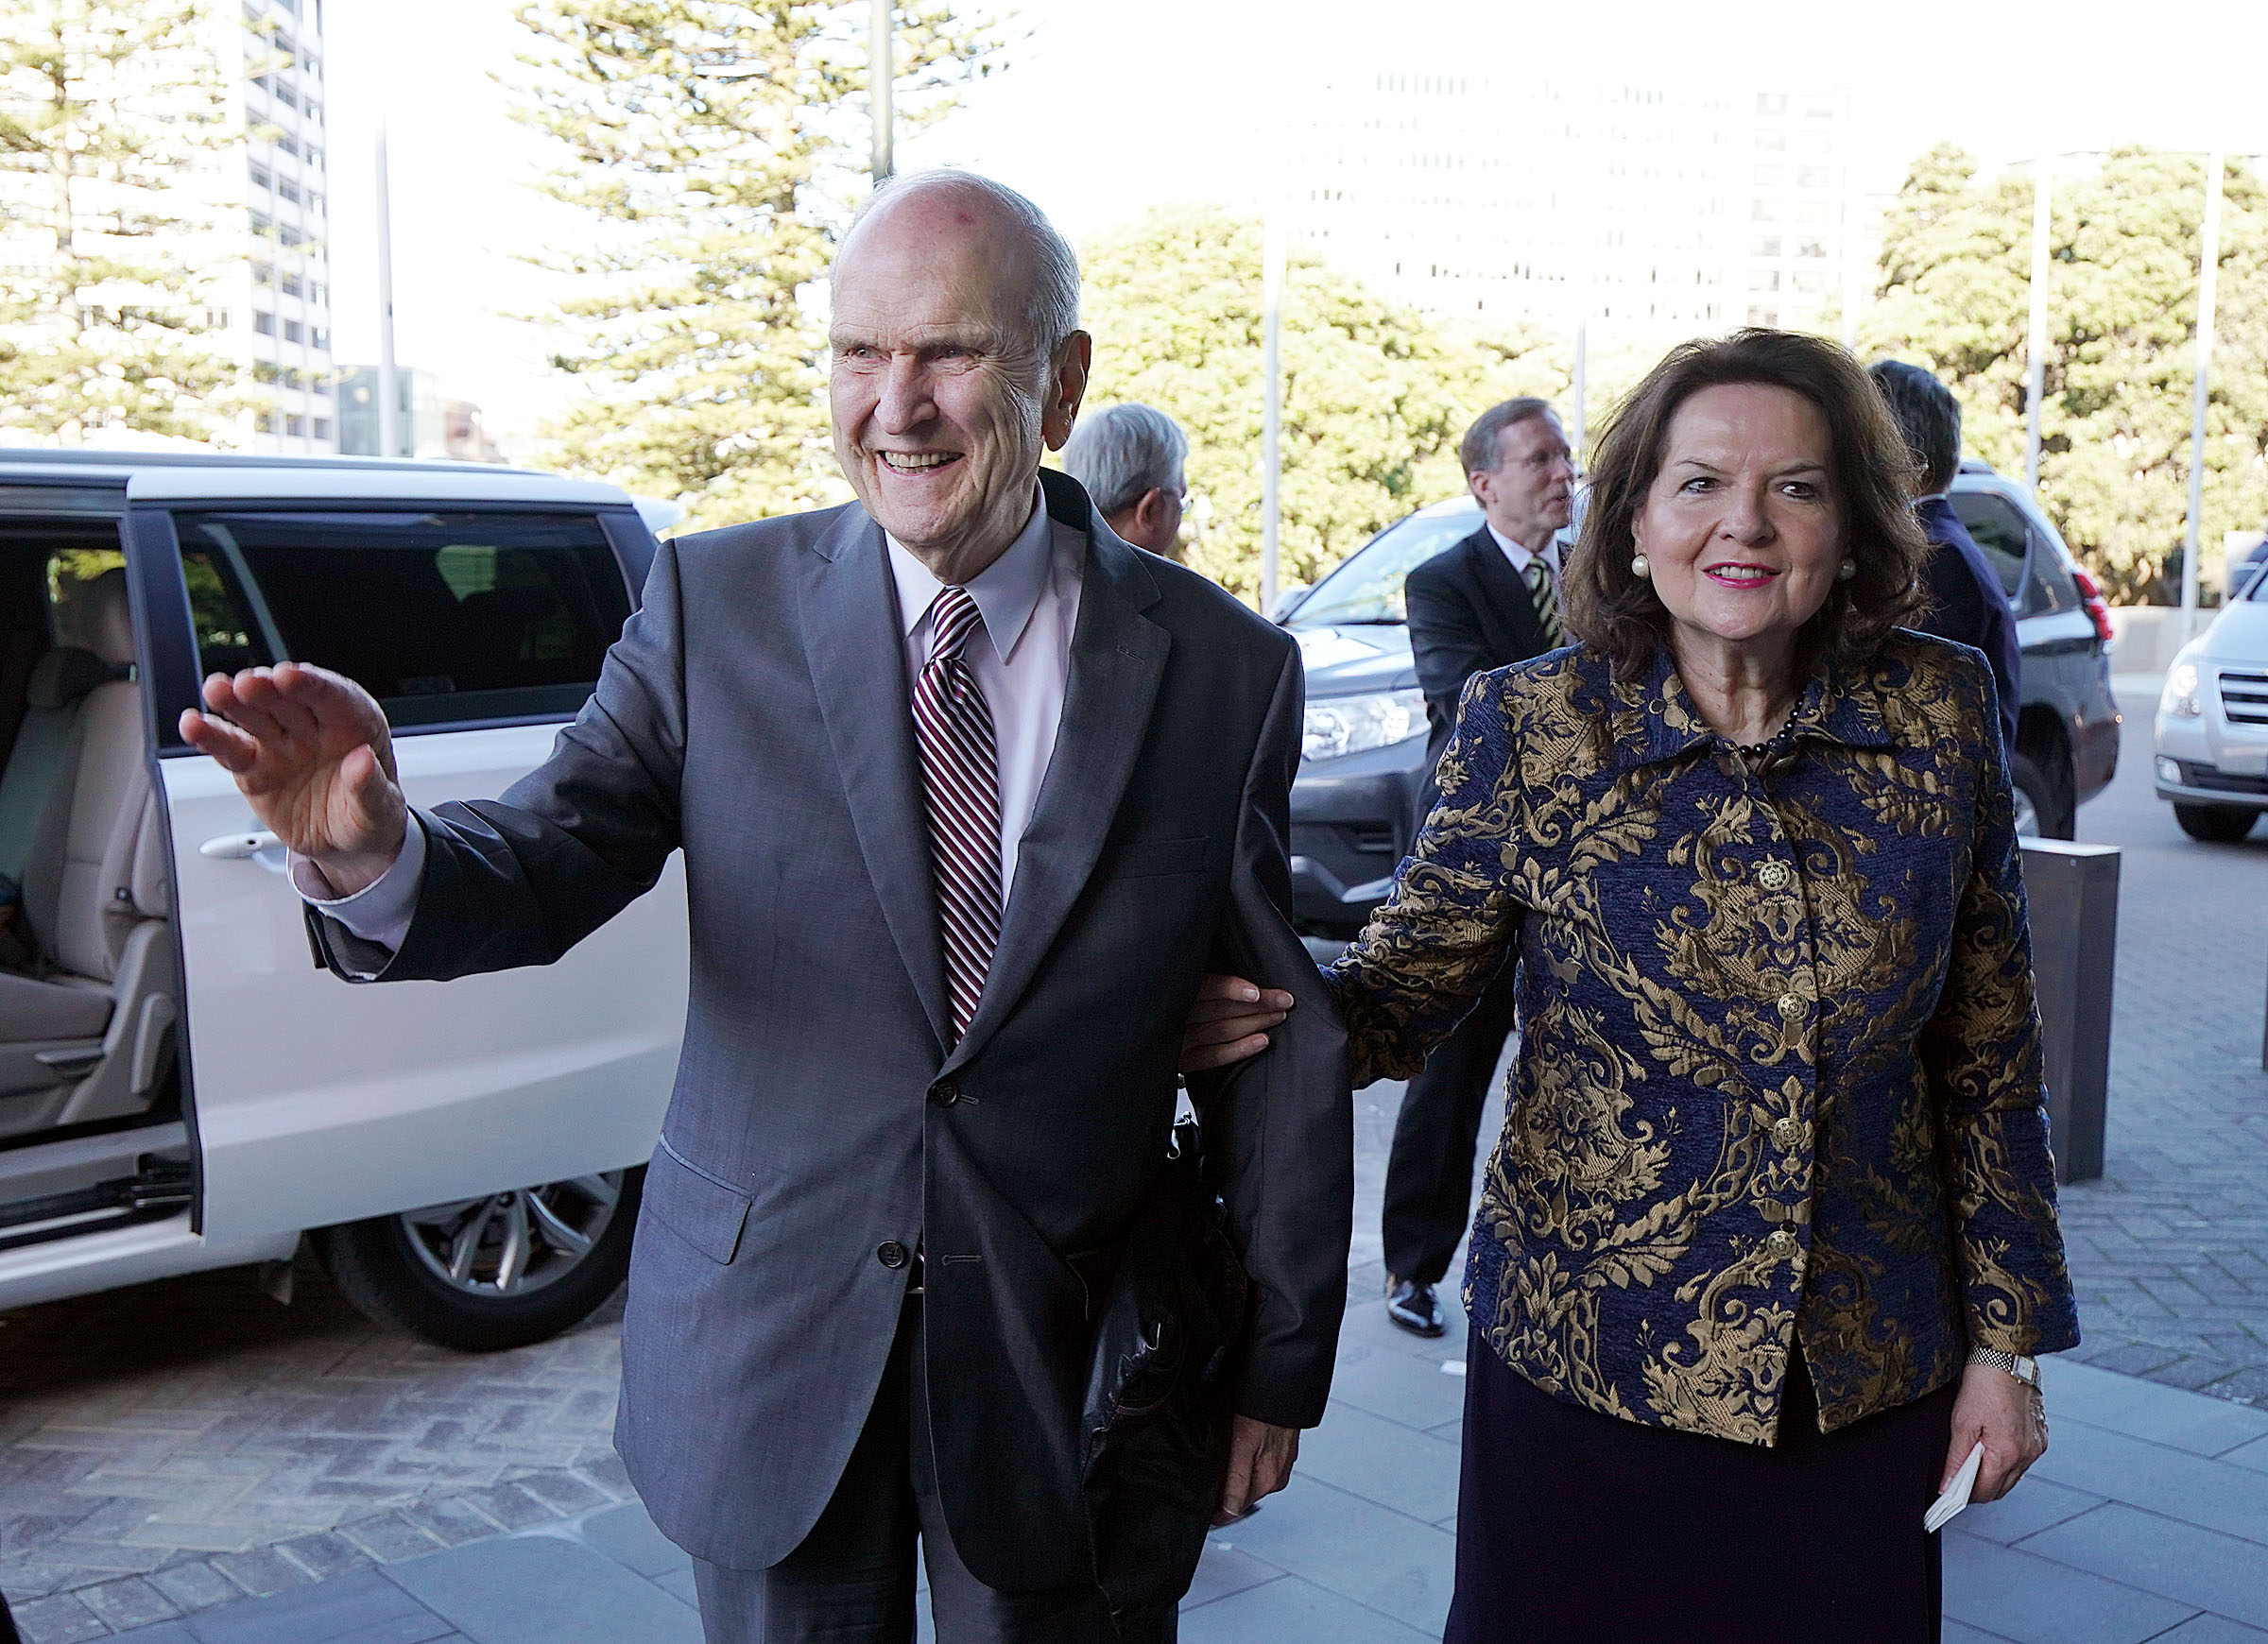 President Russell M. Nelson of The Church of Jesus Christ of Latter-day Saints and his wife, Sister Wendy Nelson, arrive to meet with New Zealand Prime Minister Jacinda Ardern in Wellington on Monday, May 20, 2019.